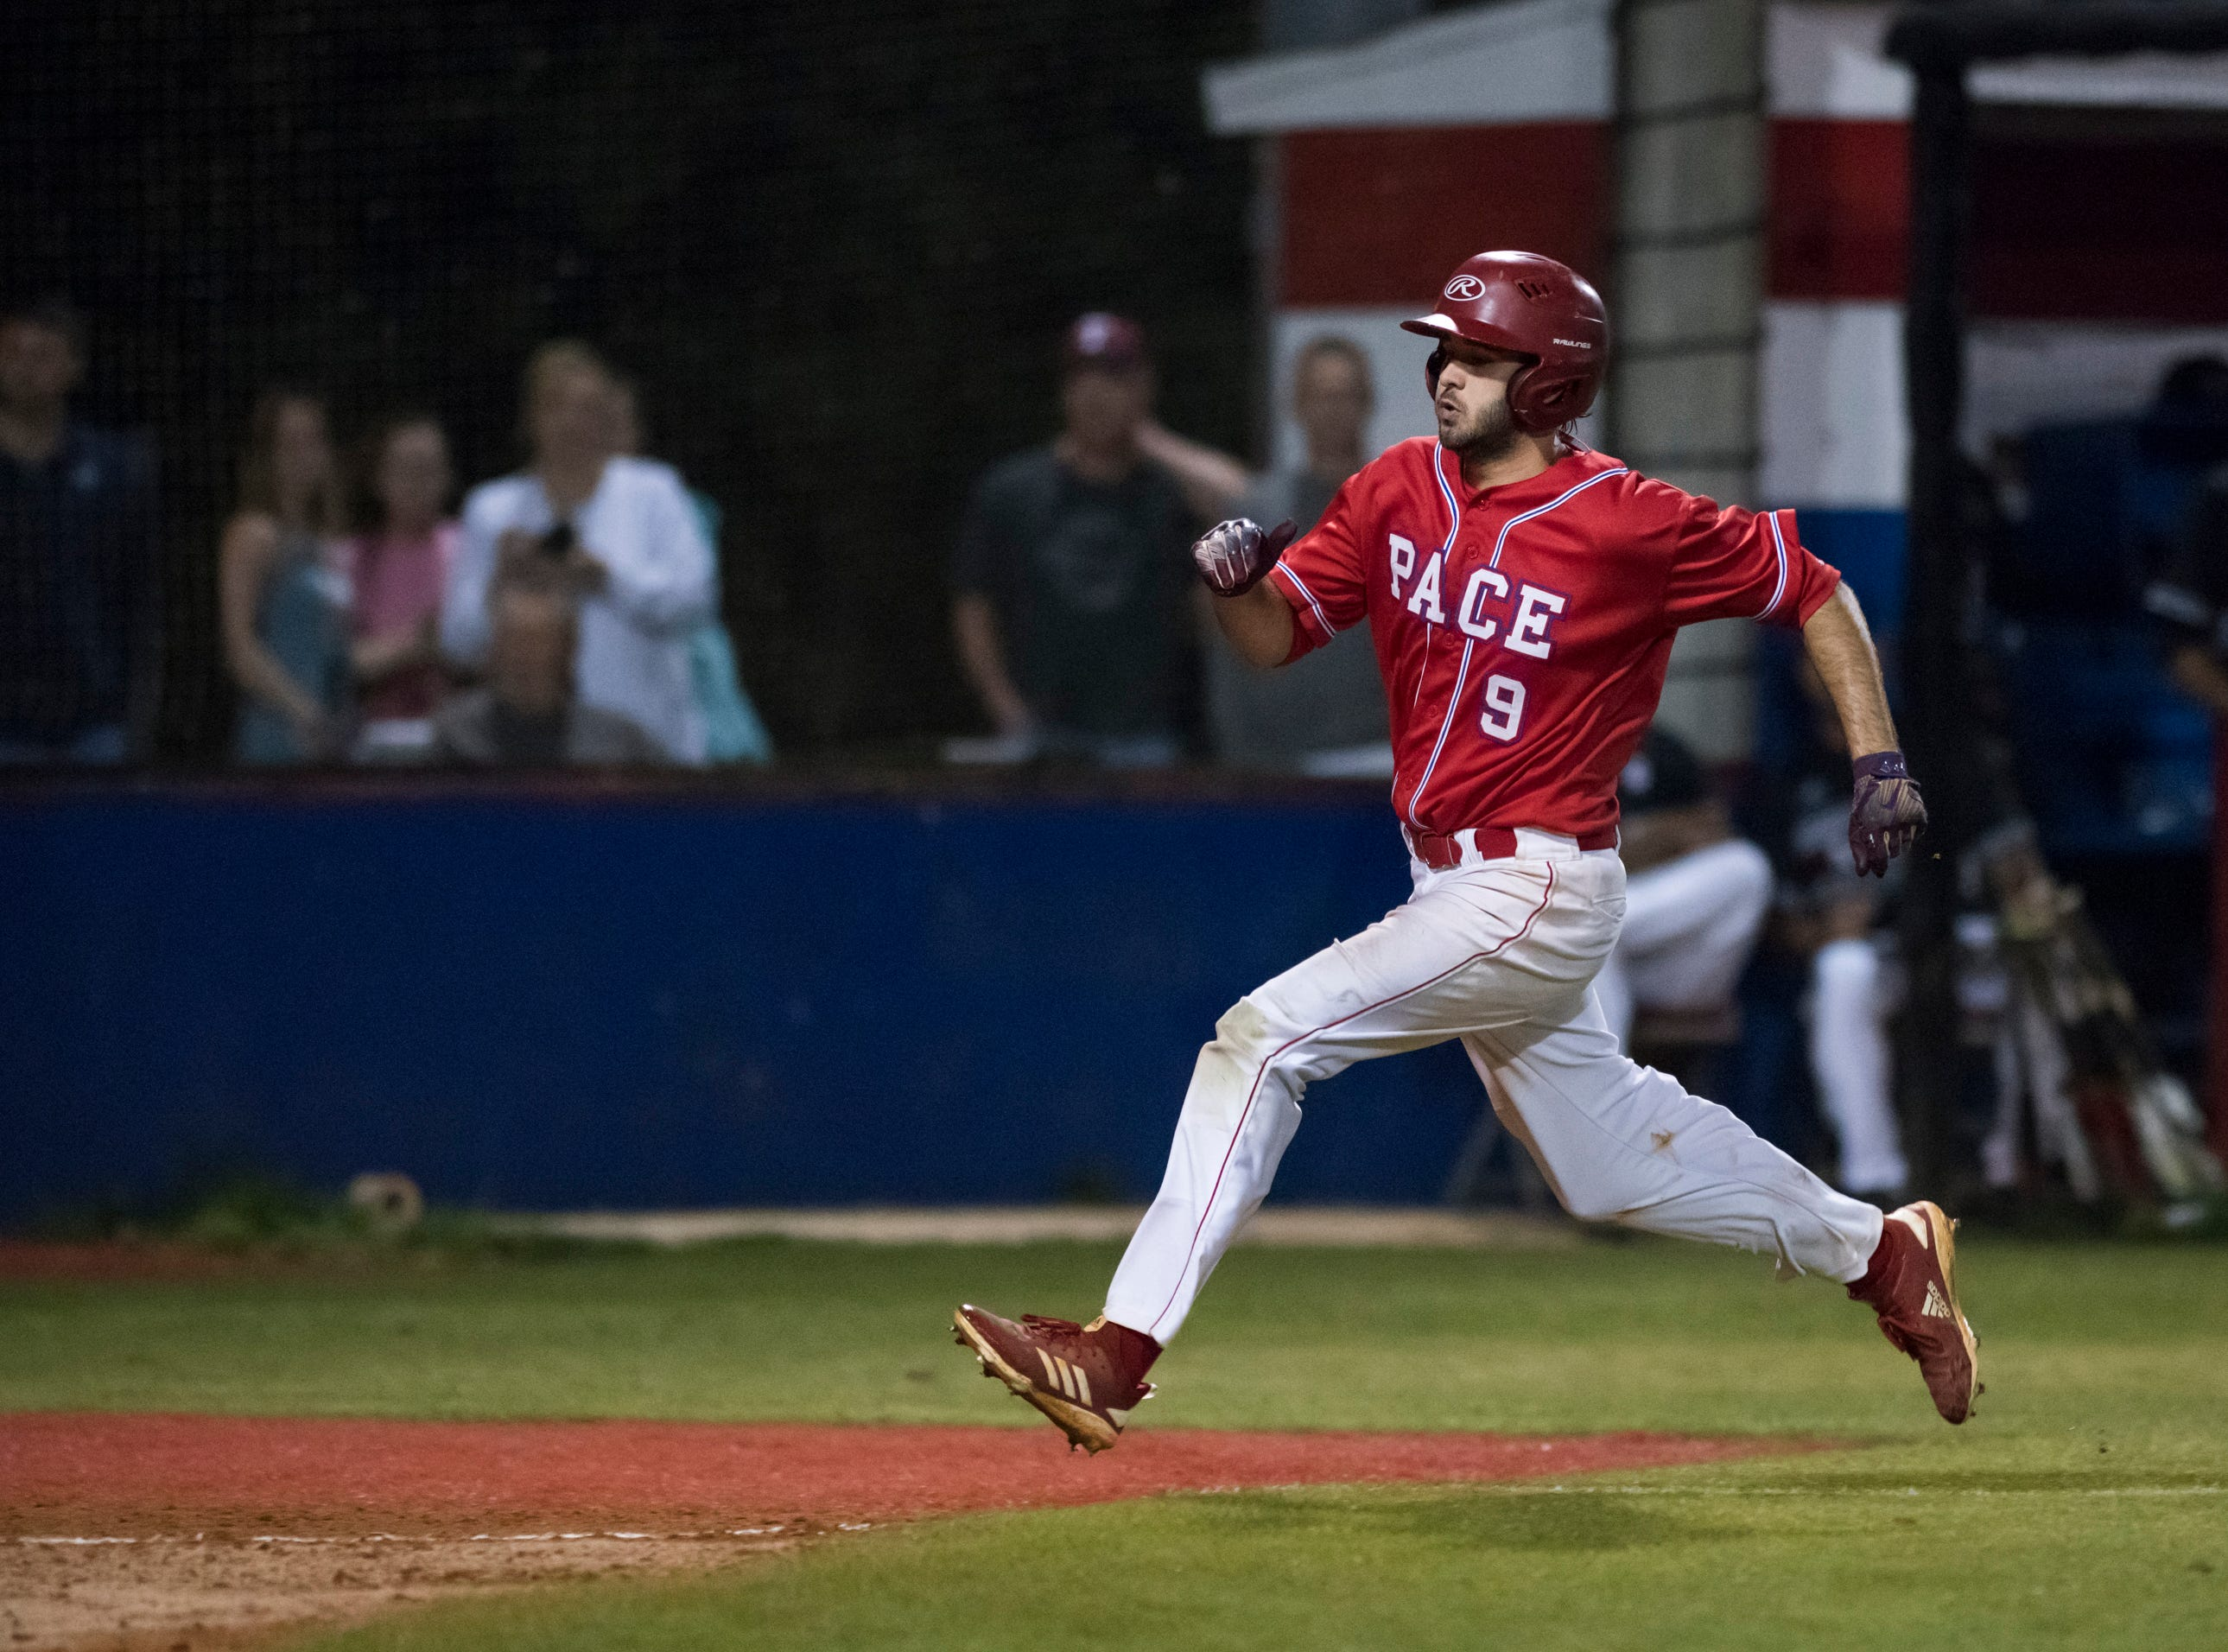 Dalton Dean (9) heads home on a pitch that got past the catcher cutting the Aggie lead to 5-1 during the Tate vs Pace baseball game at Pace High School on Thursday, April 11, 2019.